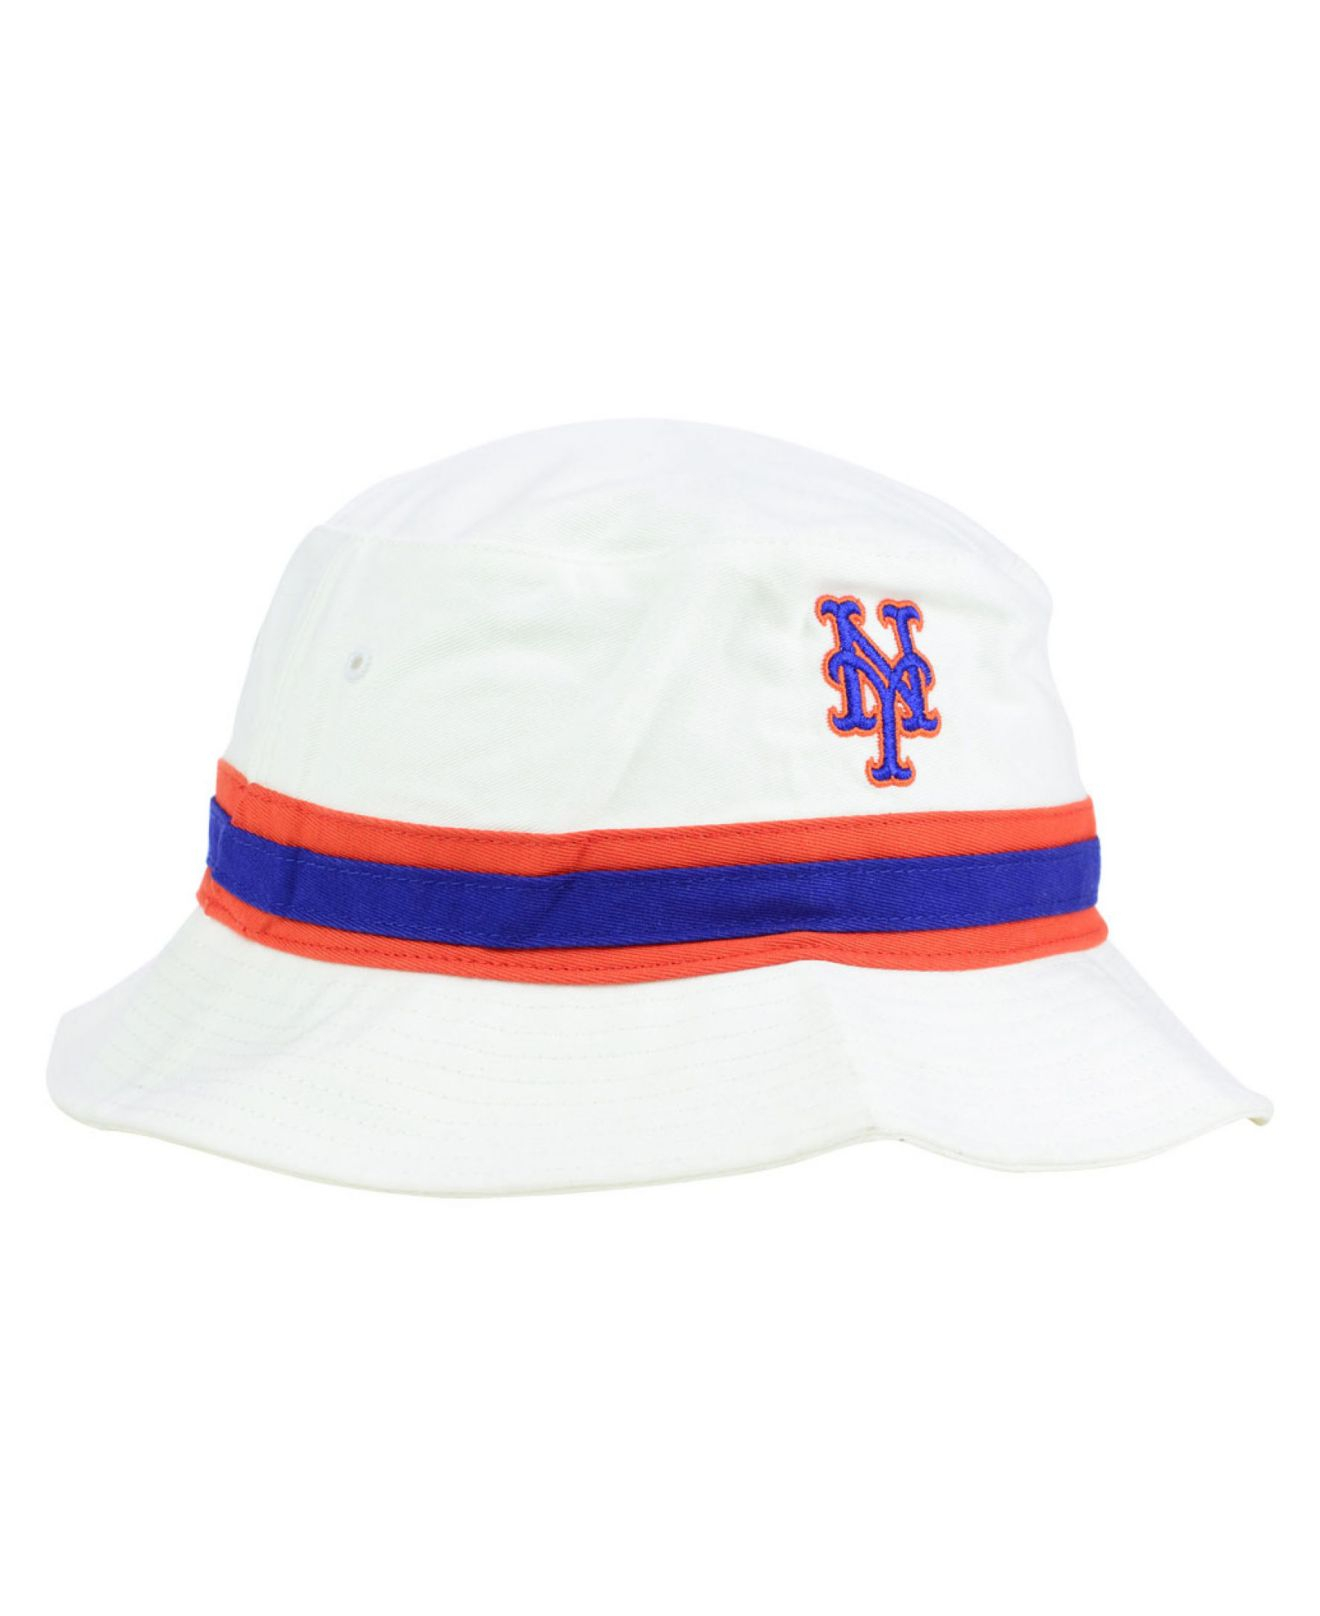 new product f0d70 c2da4 ... promo code for lyst 47 brand new york mets striped bucket hat in white  78e9a 2c0f0 discount ...